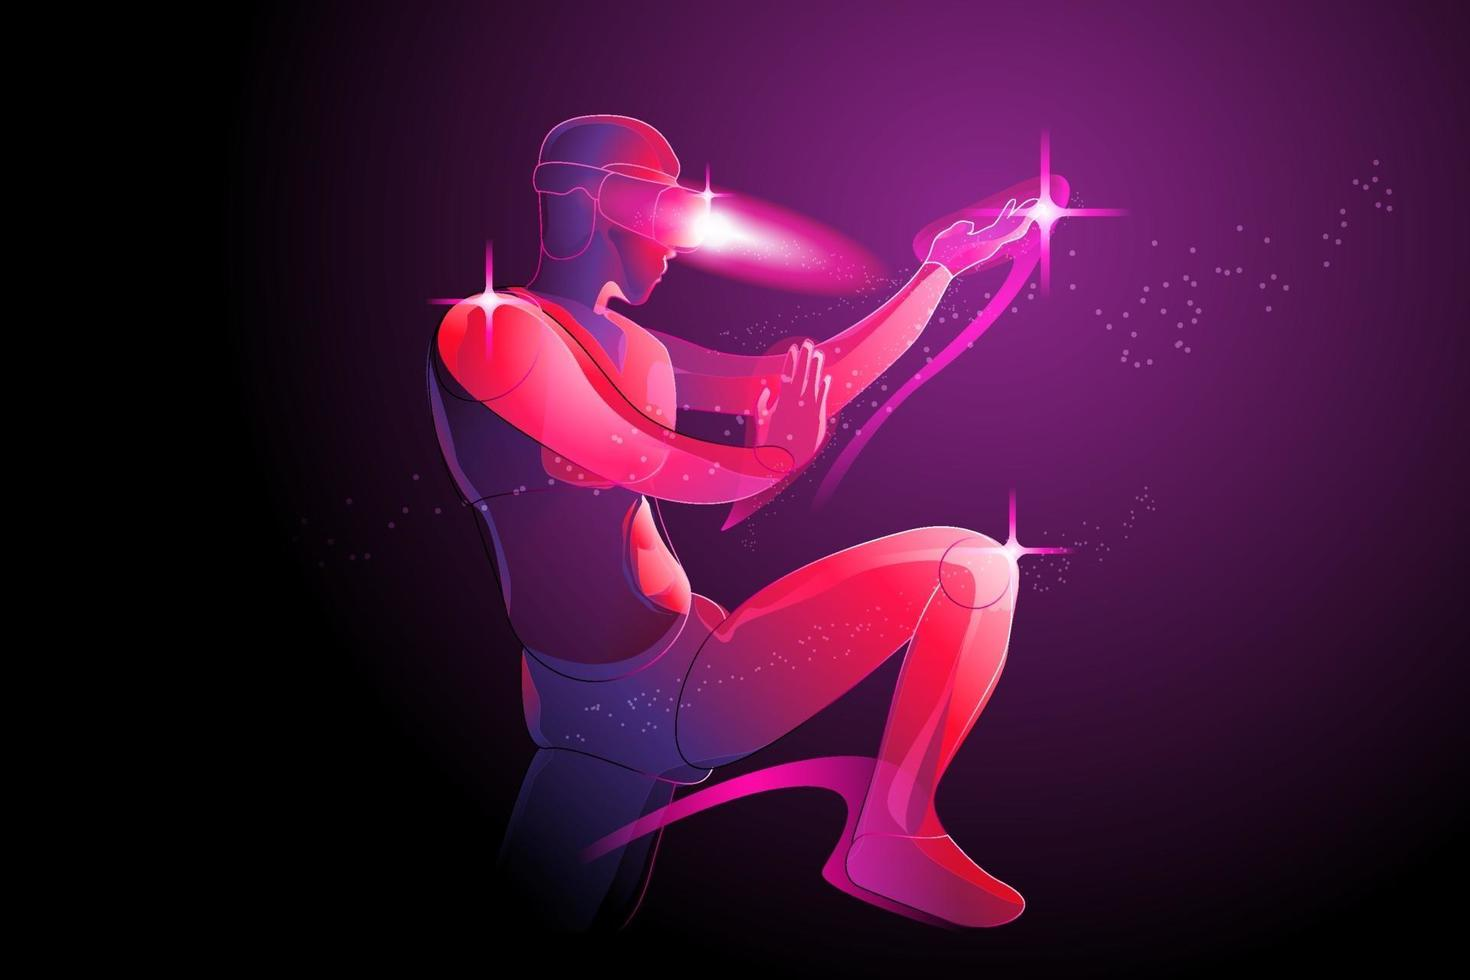 The man posing prepare to fight, by wearing virtual reality machine VR, imagination to fight someone in digital world, tai chi, kung fu, karate, taekwondo, jujutsu, vector illustration in violet.